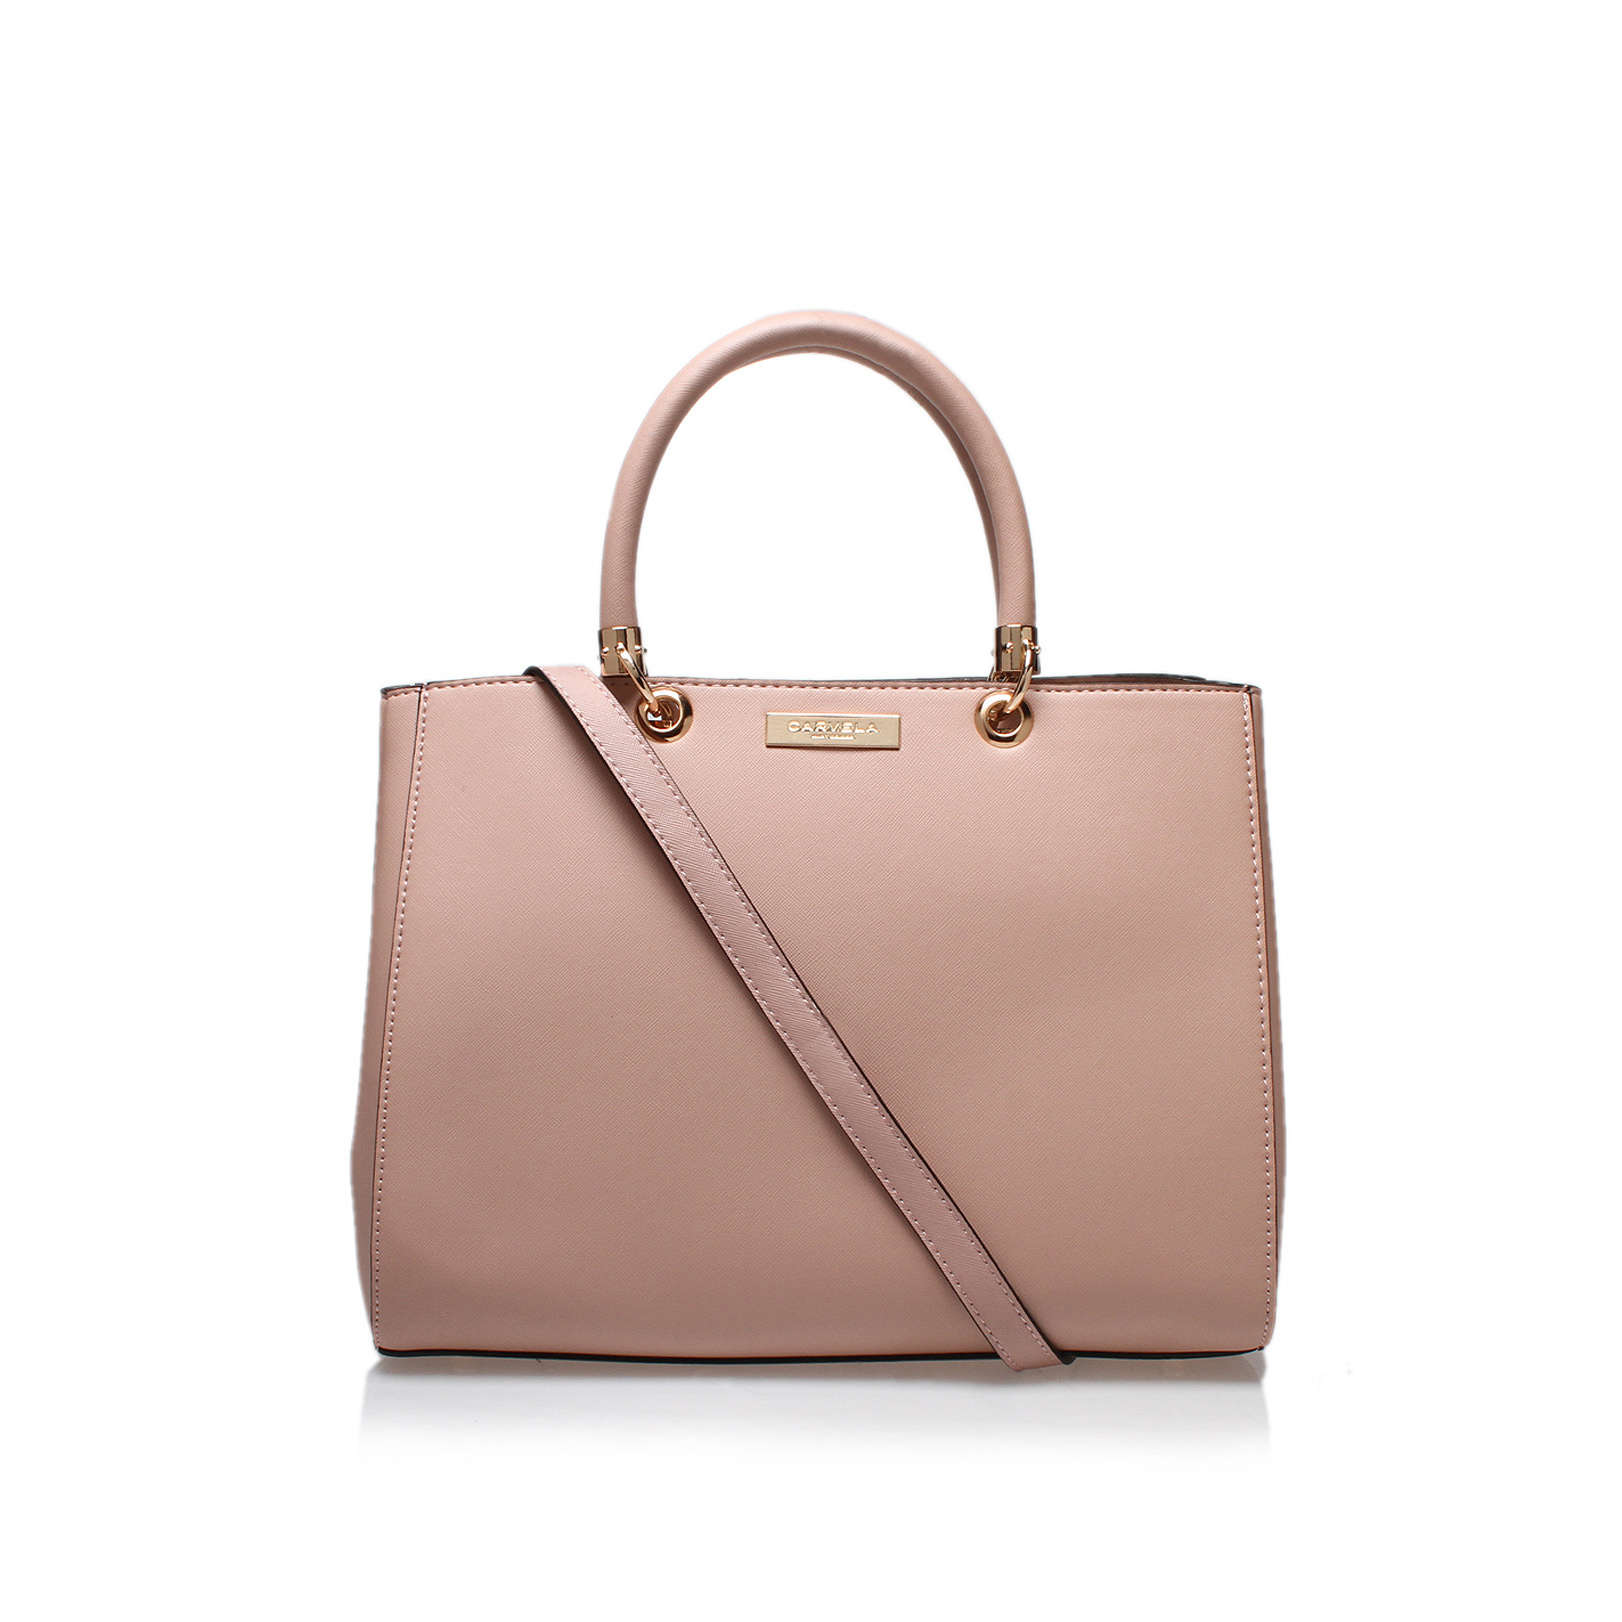 DARLA STRUCTURED TOTE